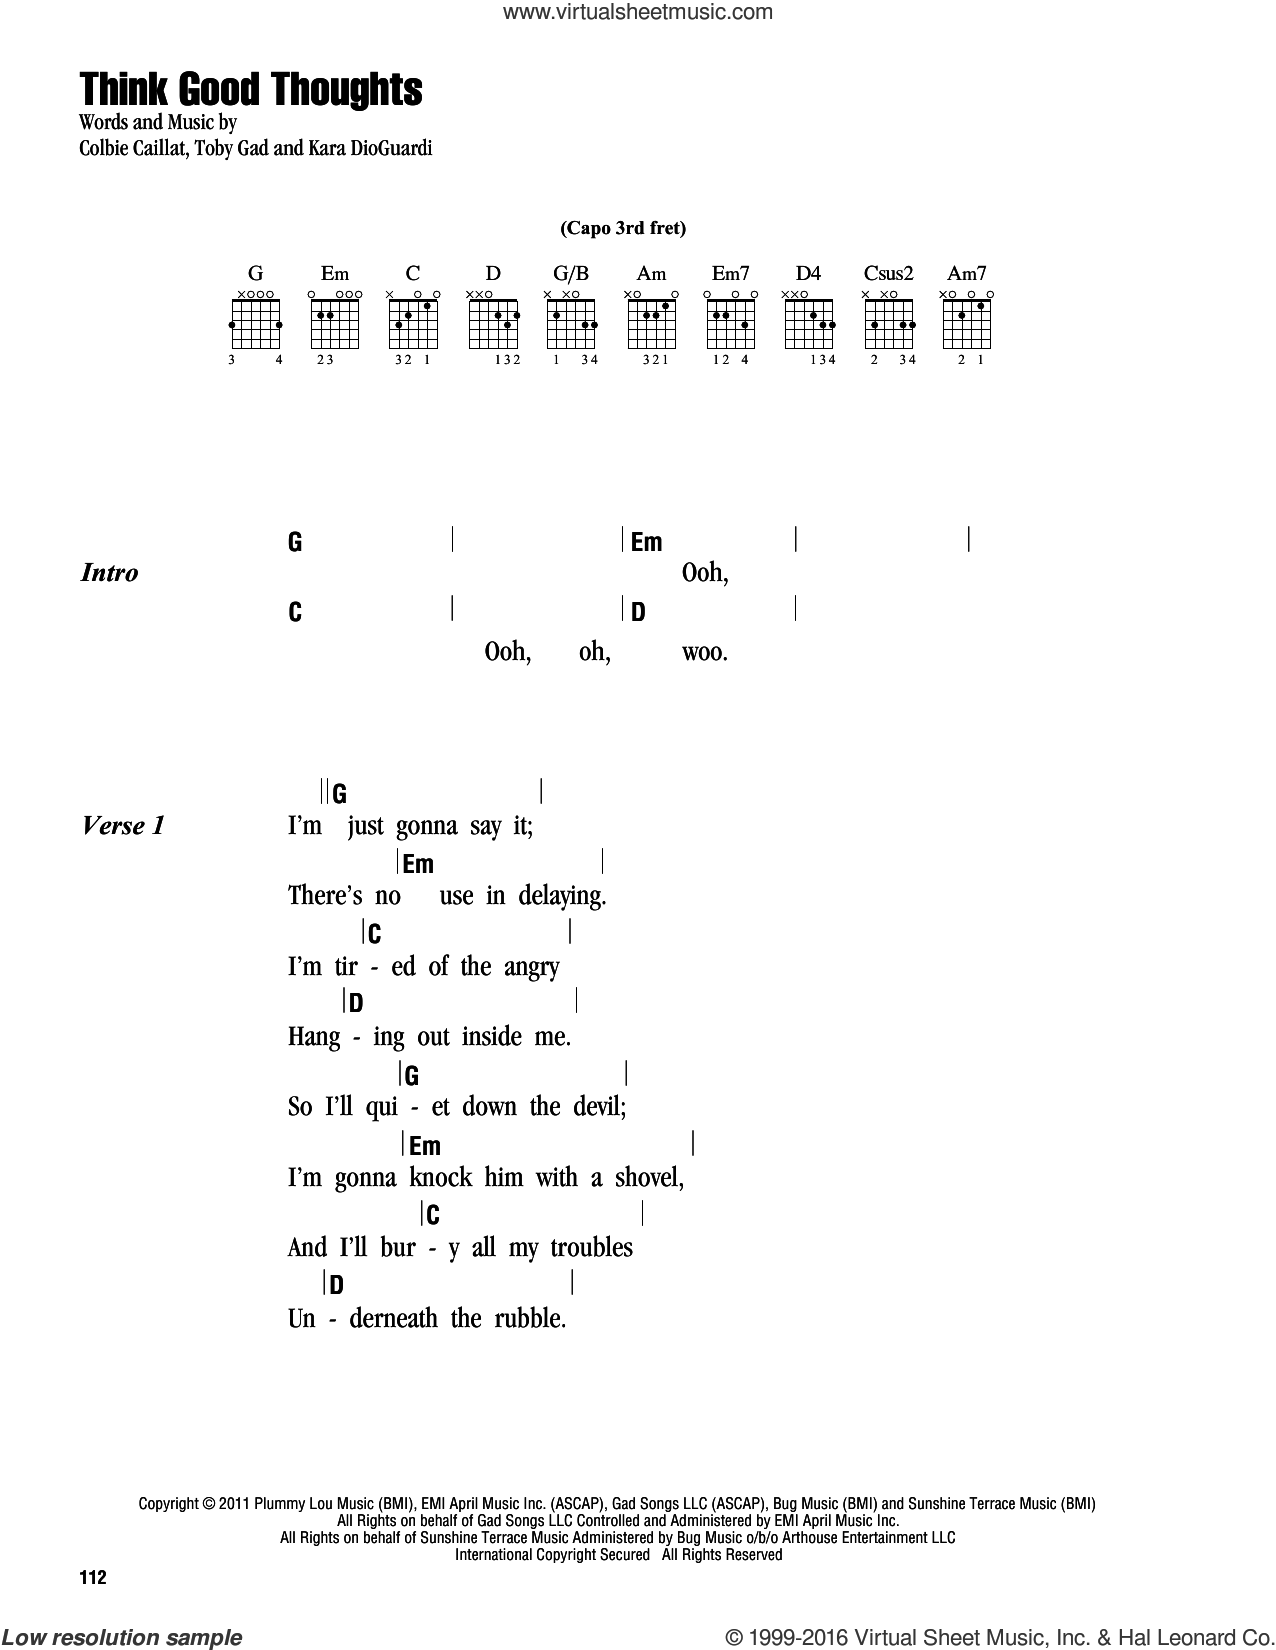 Think Good Thoughts sheet music for guitar (chords) by Colbie Caillat, Kara DioGuardi and Toby Gad, intermediate skill level